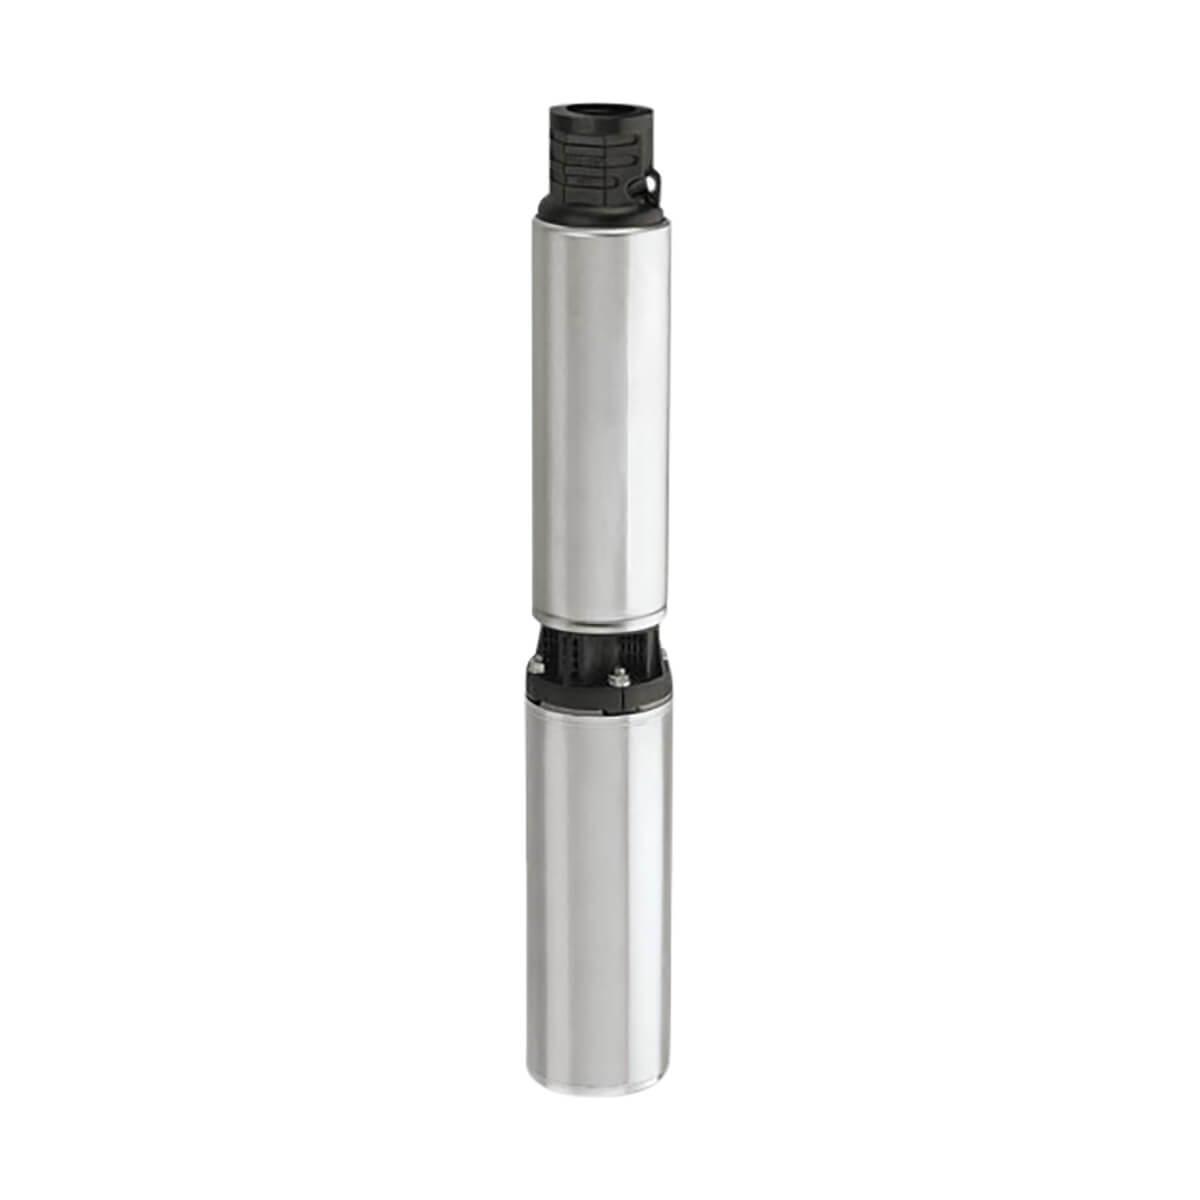 "Pentair Simer 2860G 1 HP 4"" Submersible Well Pump - 10gpm"